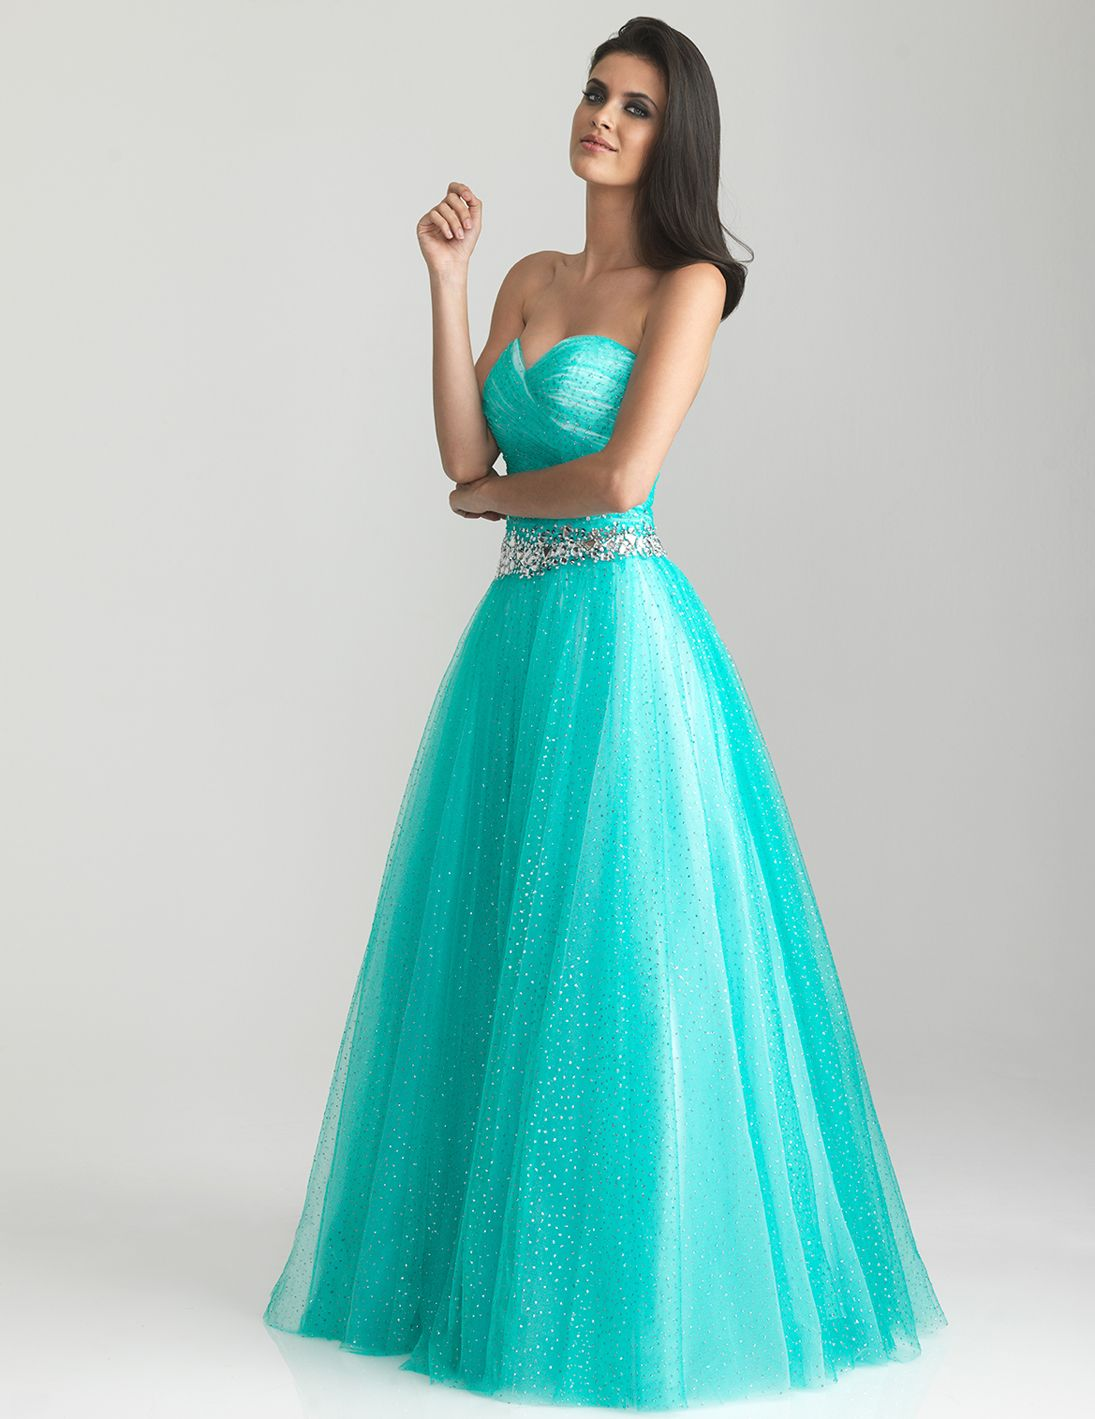 Aqua gathered shimmer tulle sweetheart prom gown unique vintage